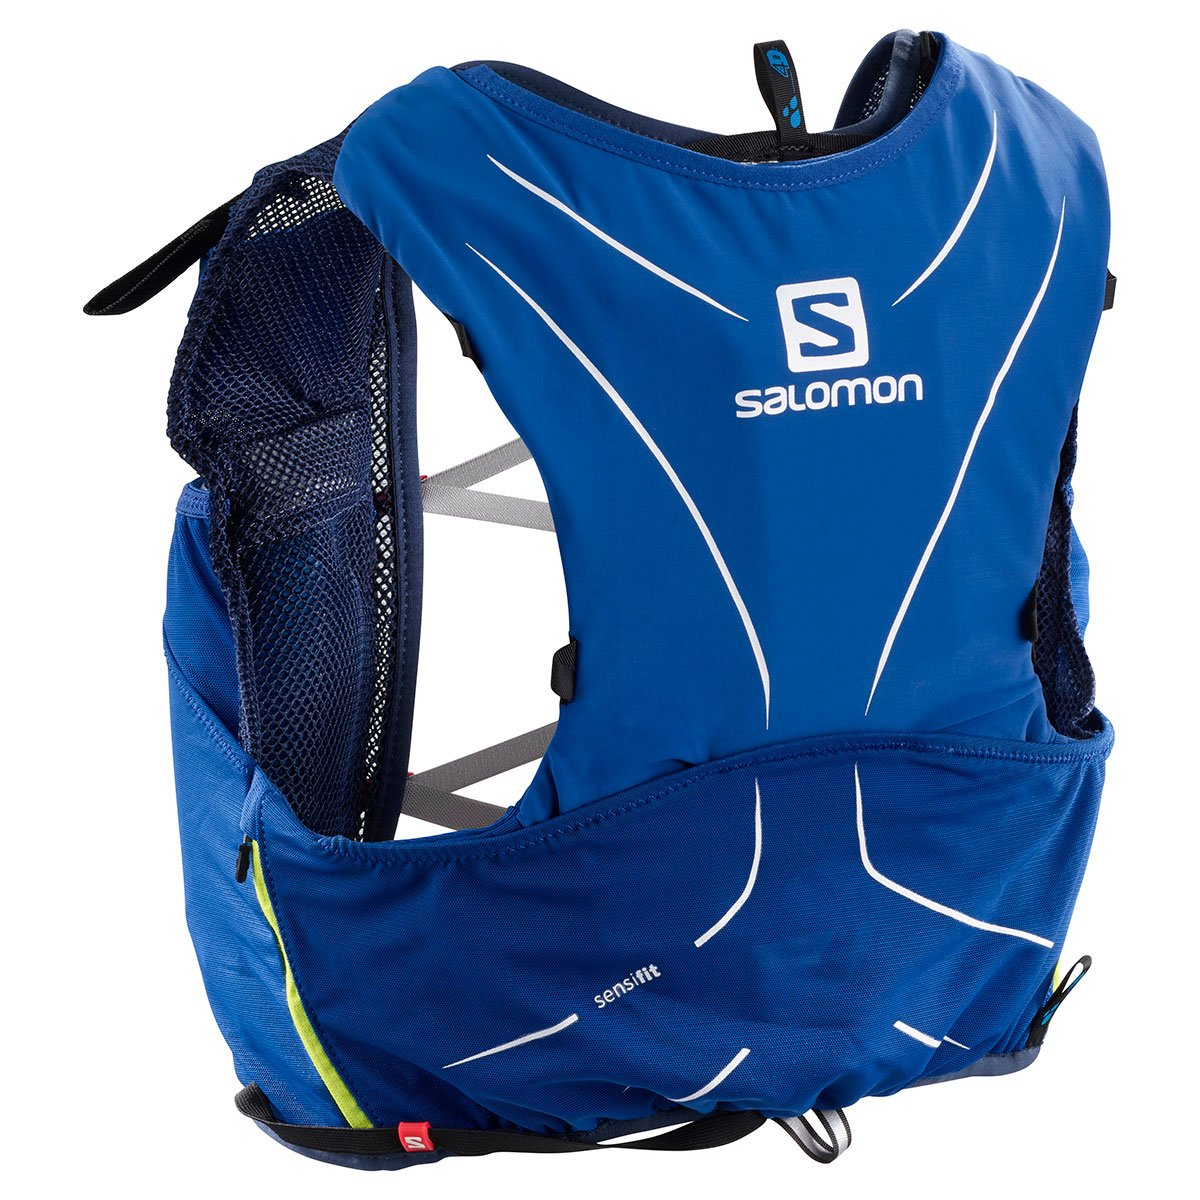 Salomon - Adv Skin - Sac à dos multifunction - Mixte Adulte SALQX|#Salomon gear L39267700